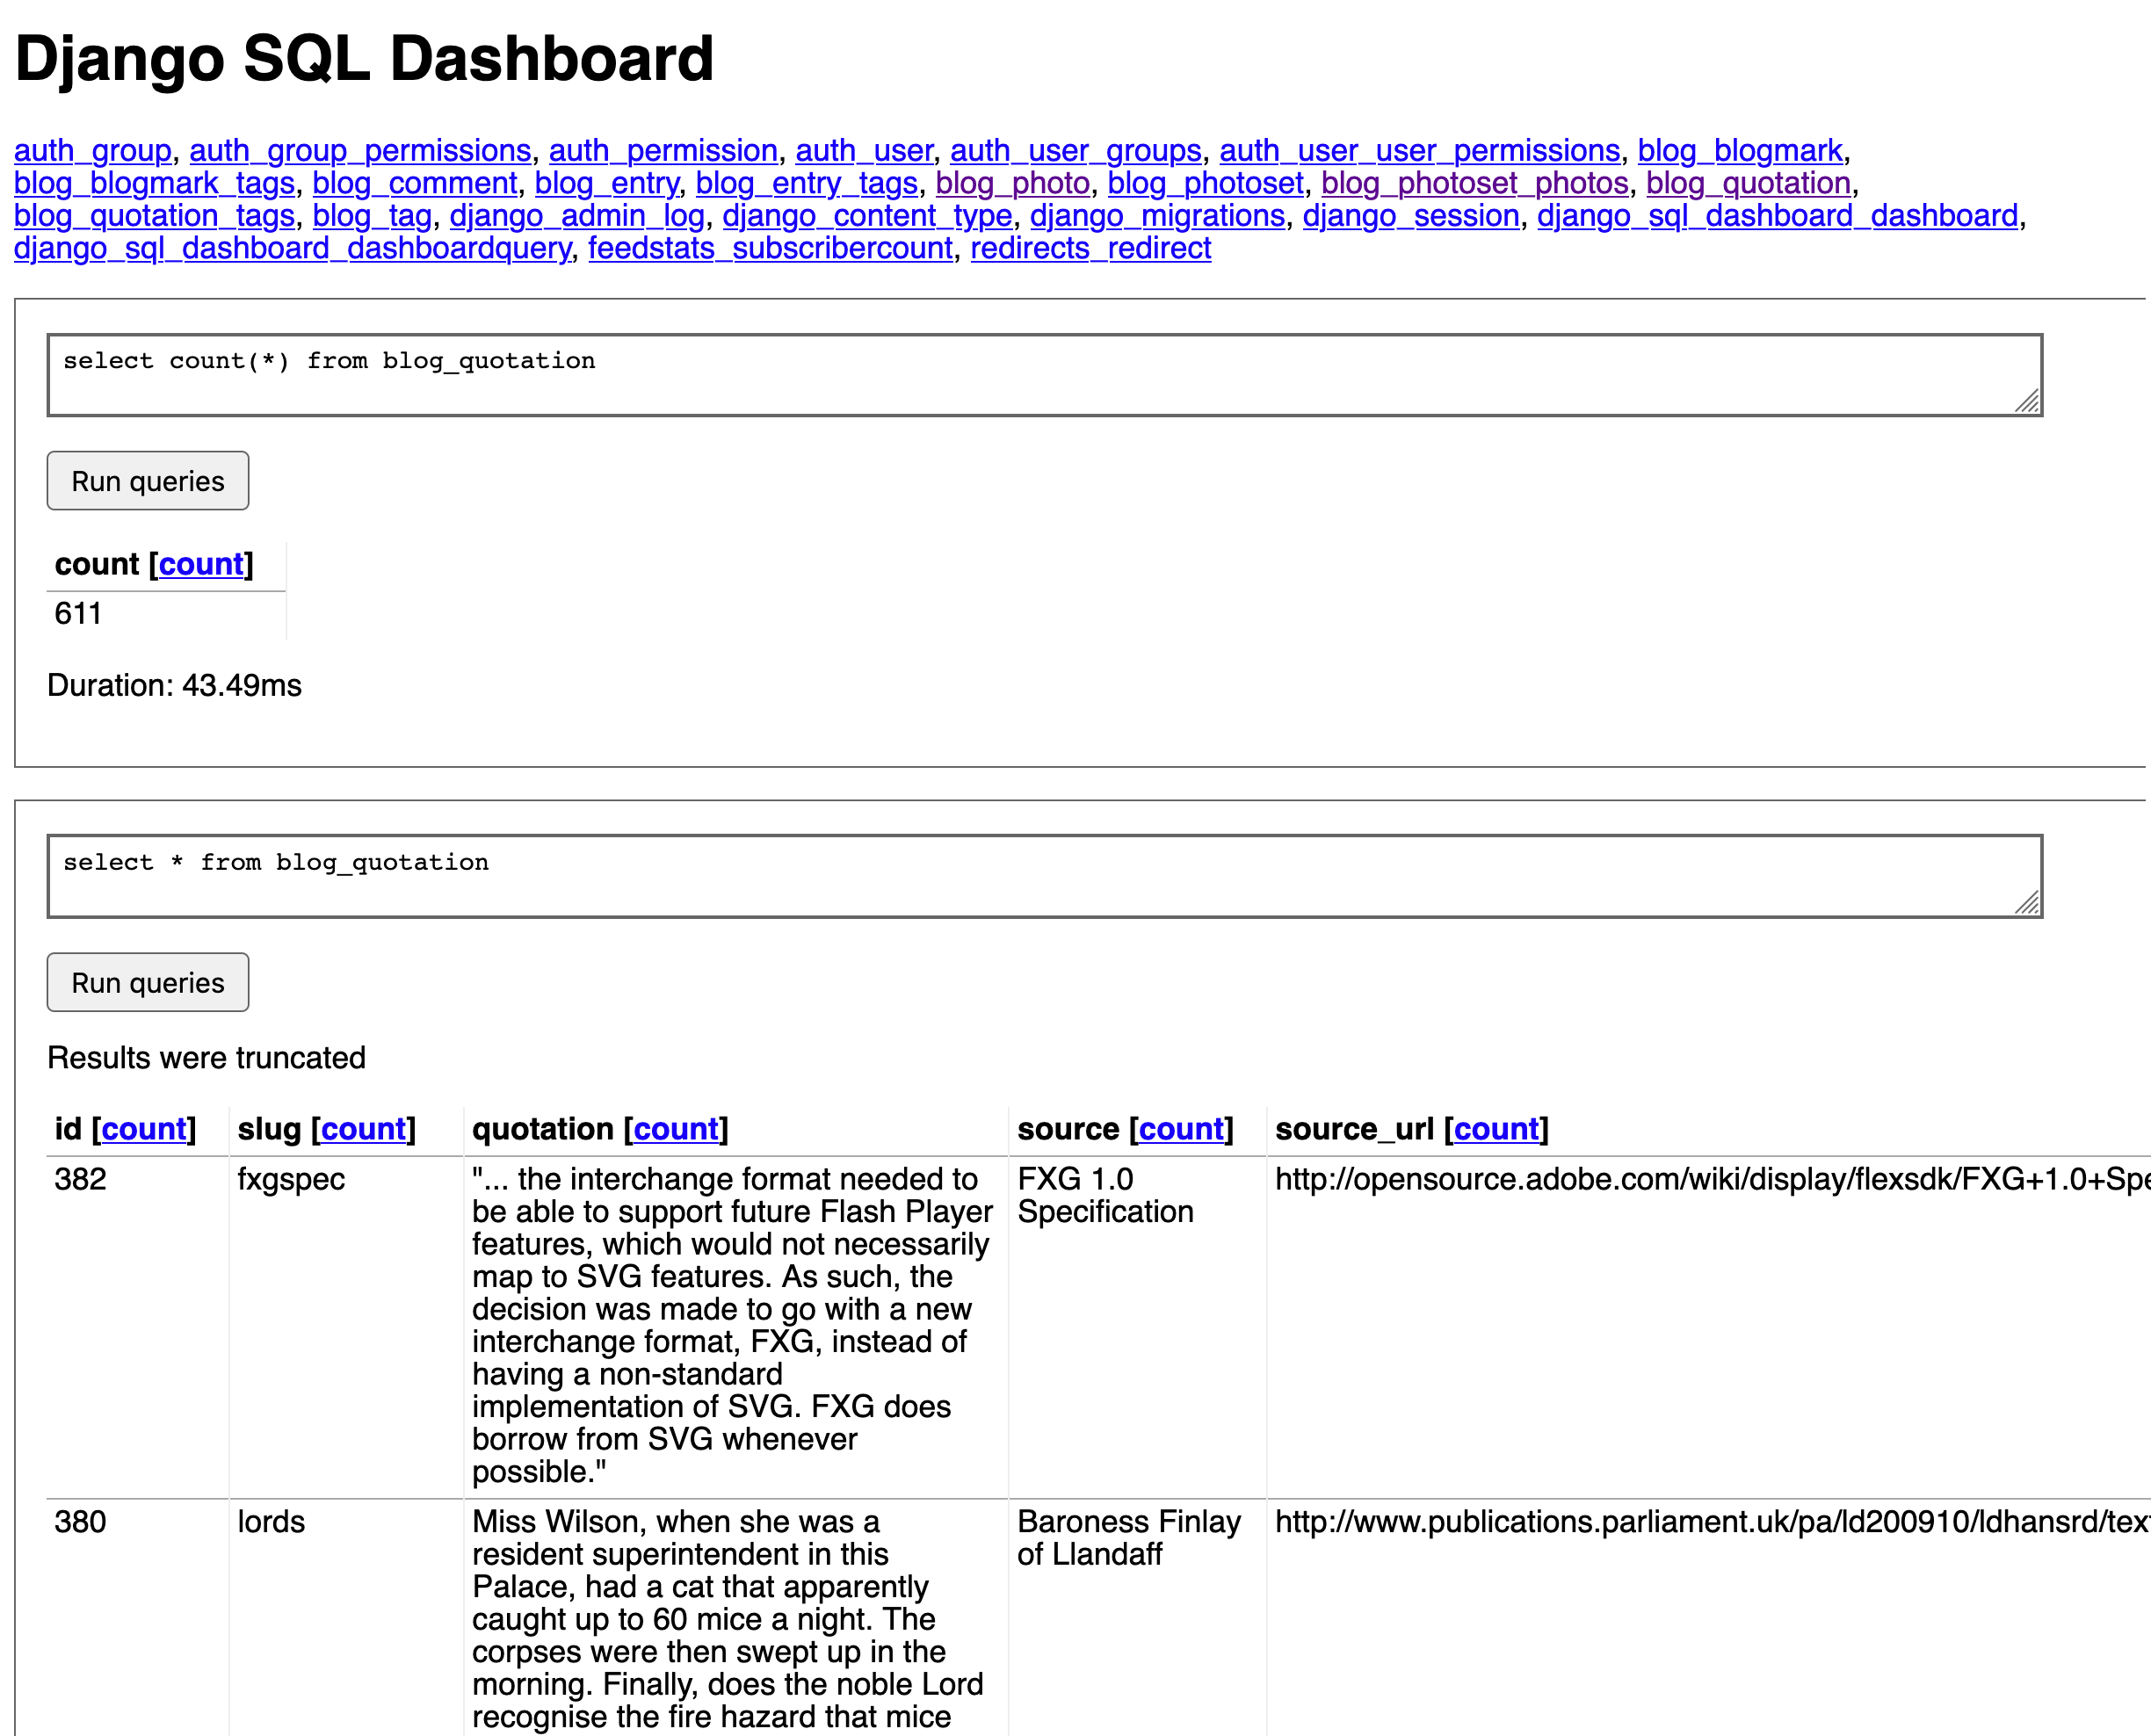 Screenshot of simonw/django-sql-dashboard